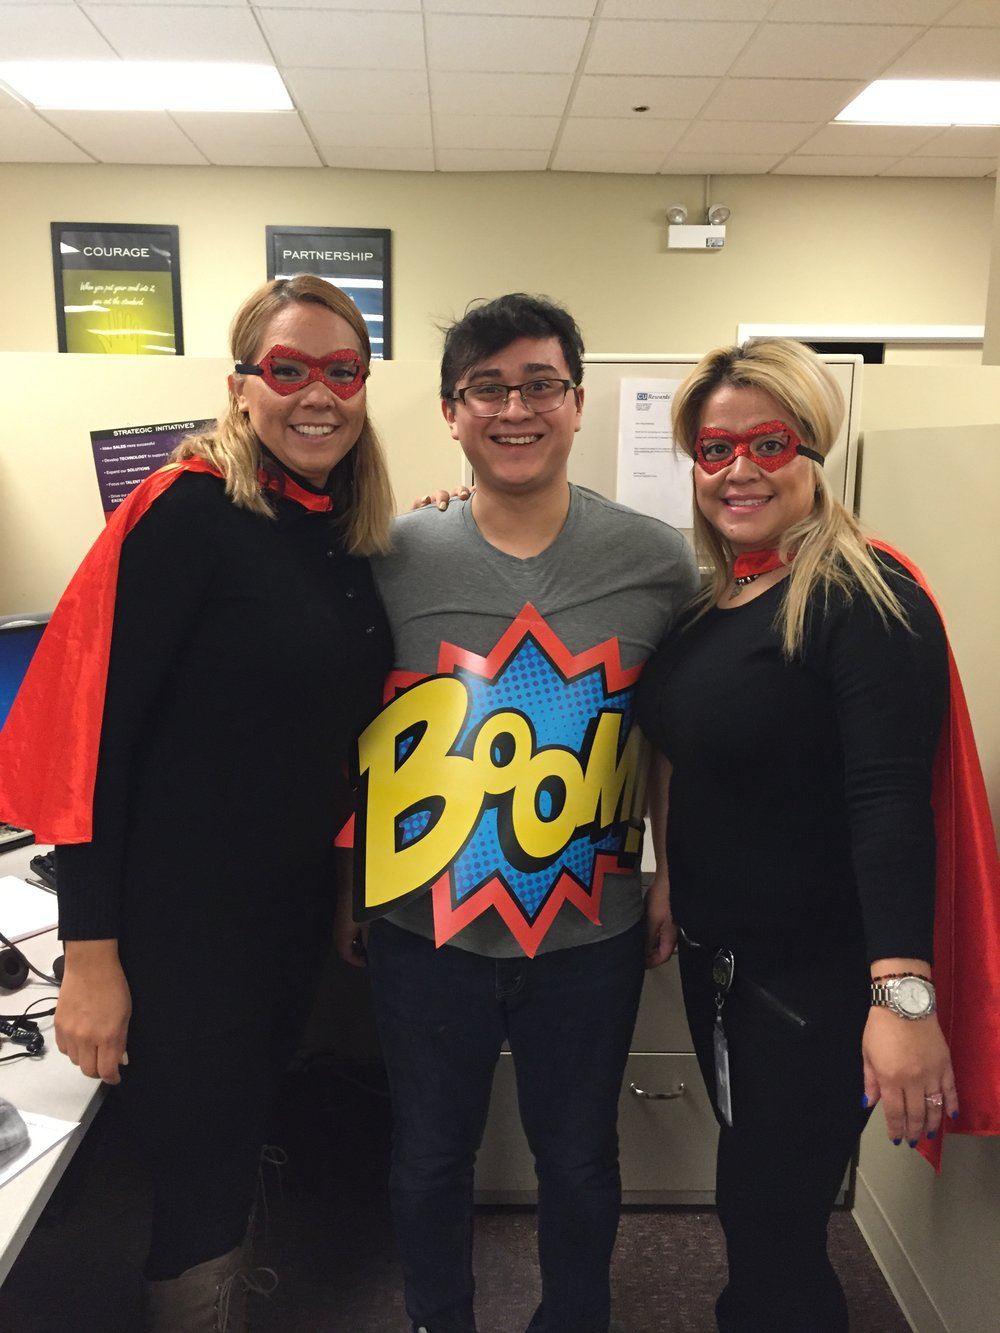 A few members of the customer service team donning their superhero garb for their parade day